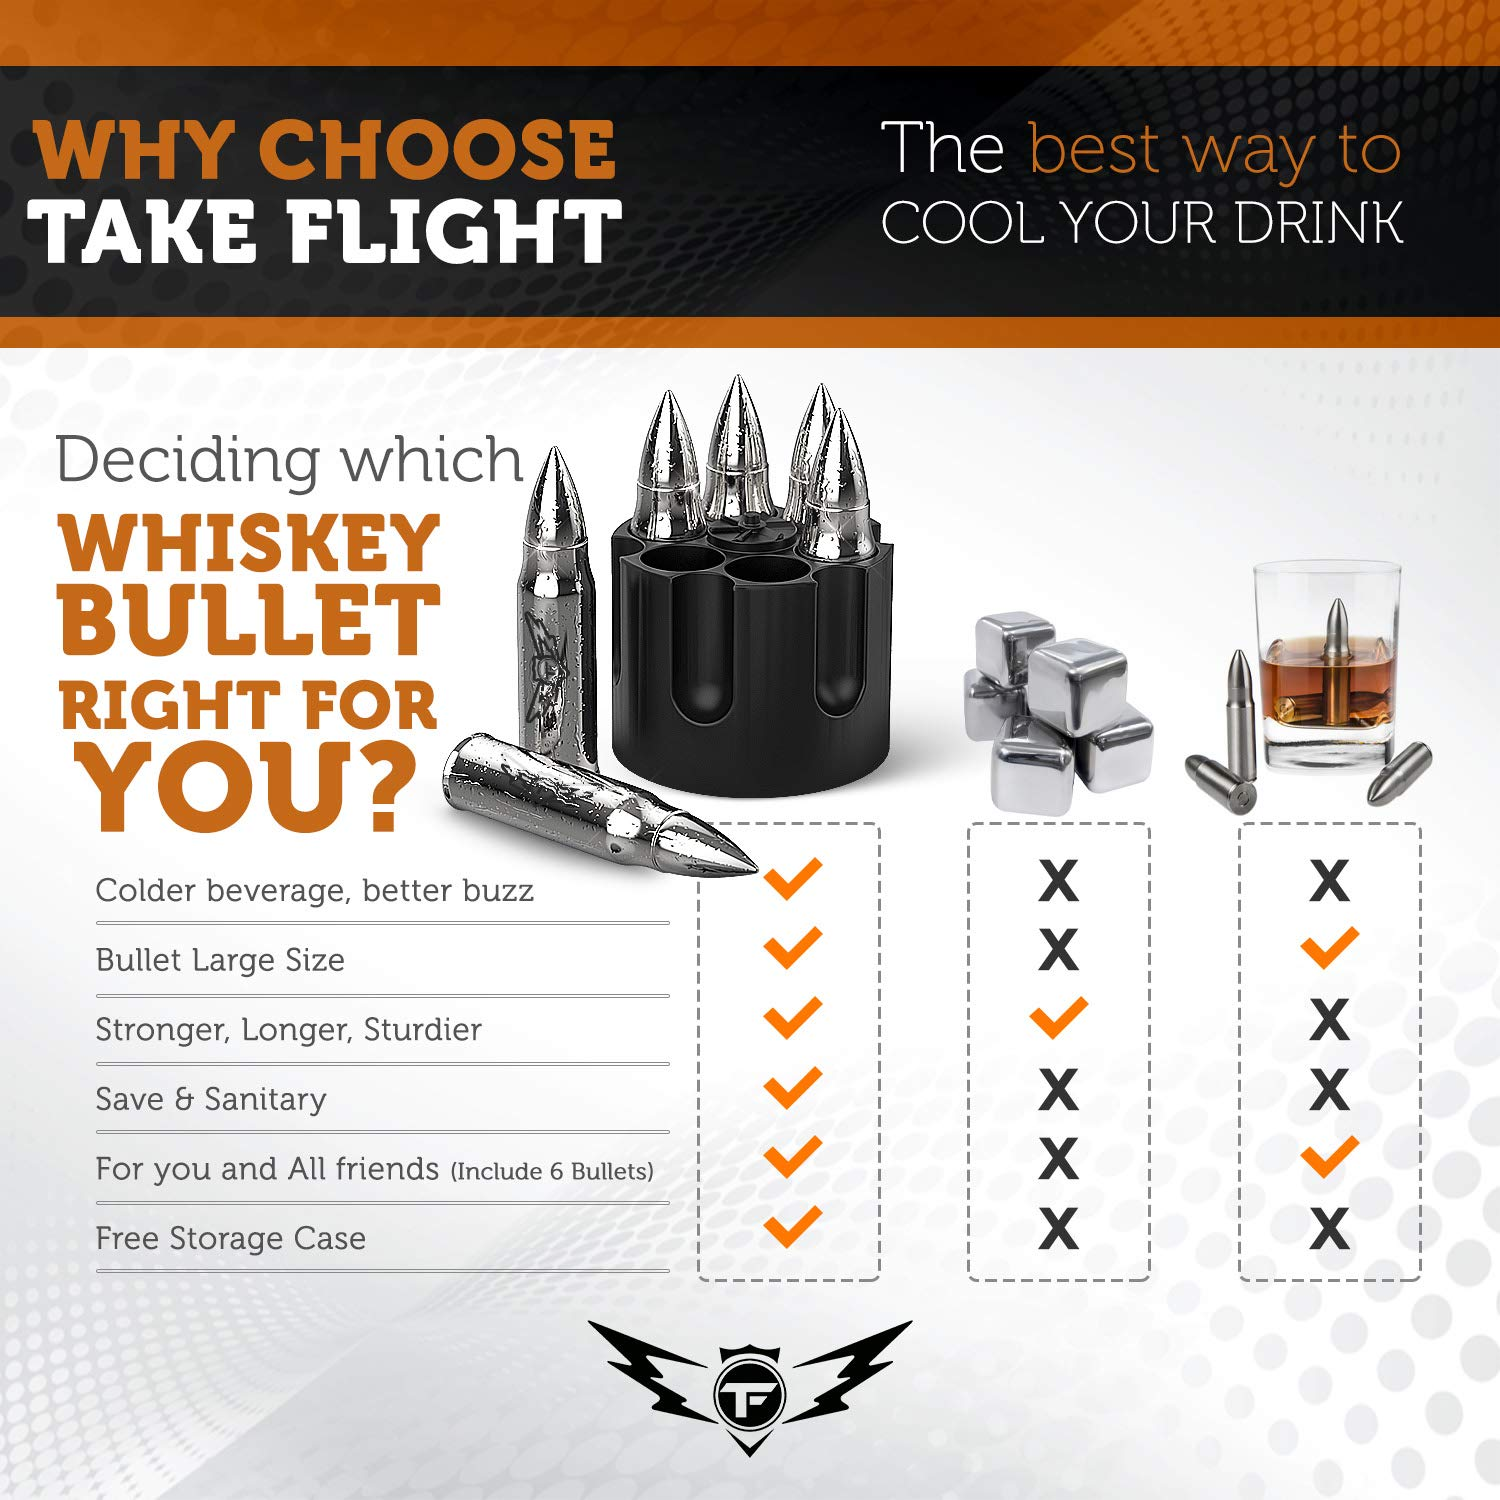 Bullet Shaped Metal Whiskey Stones - 6-Pack Stainless Steel Whiskey Rocks | Metal Ice Cubes to Chill Bourbon, Scotch in Your Whisky Glass - Cool Gifts for Men, Father's Day, Christmas Stocking Stuffer by TF TAKEFLIGHT (Image #3)